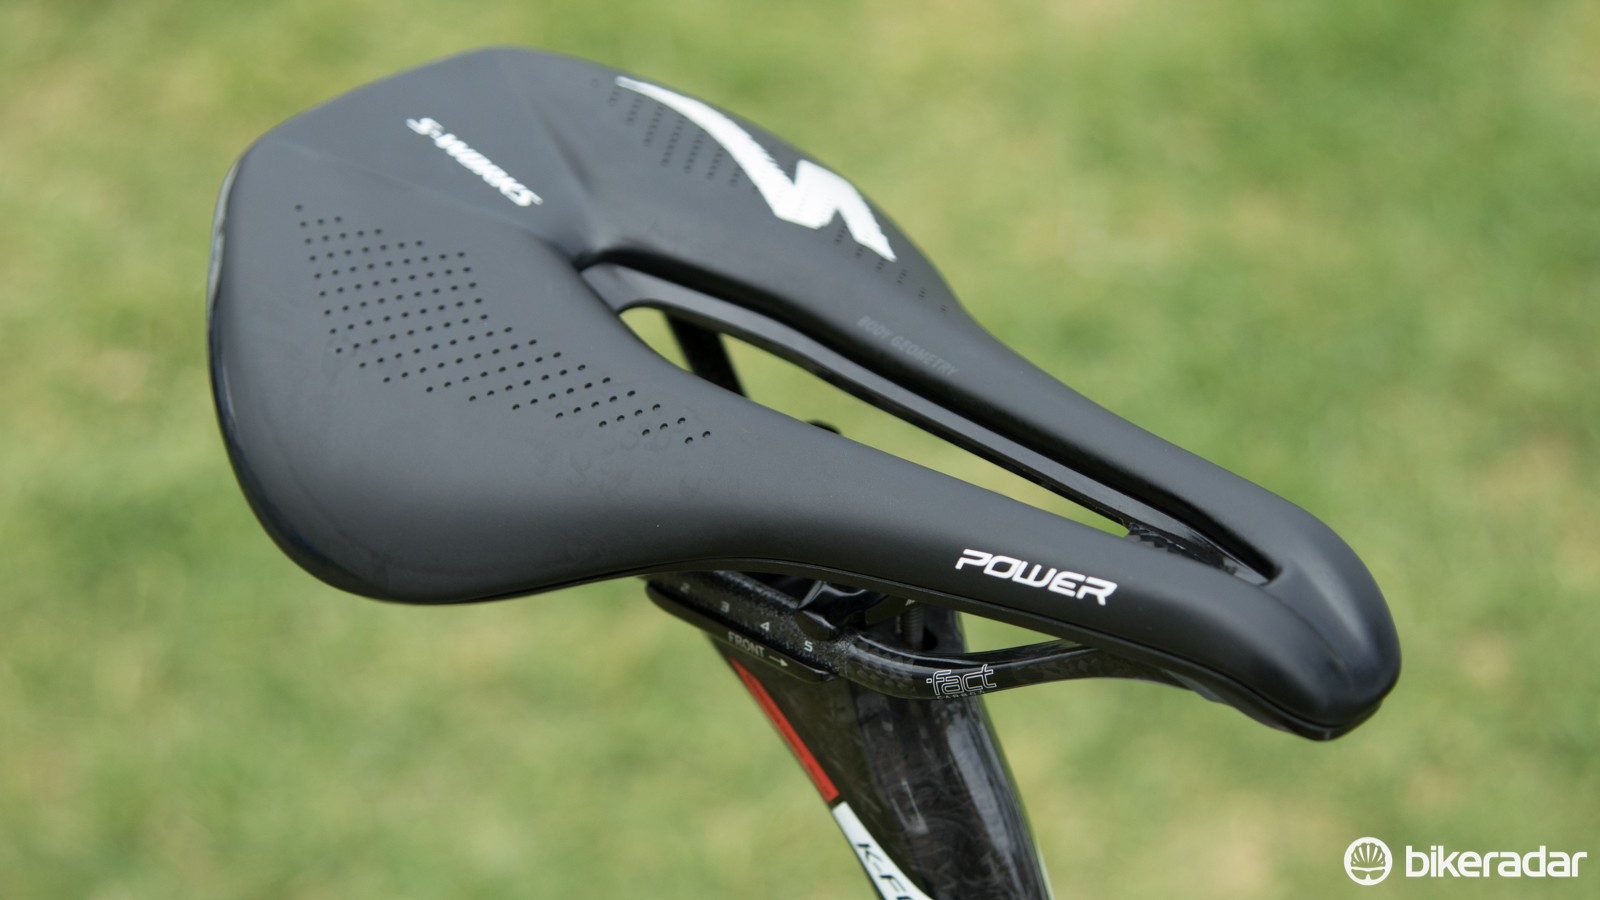 As seen on Lars Boom's bike, the Specialized S-Works Power saddle